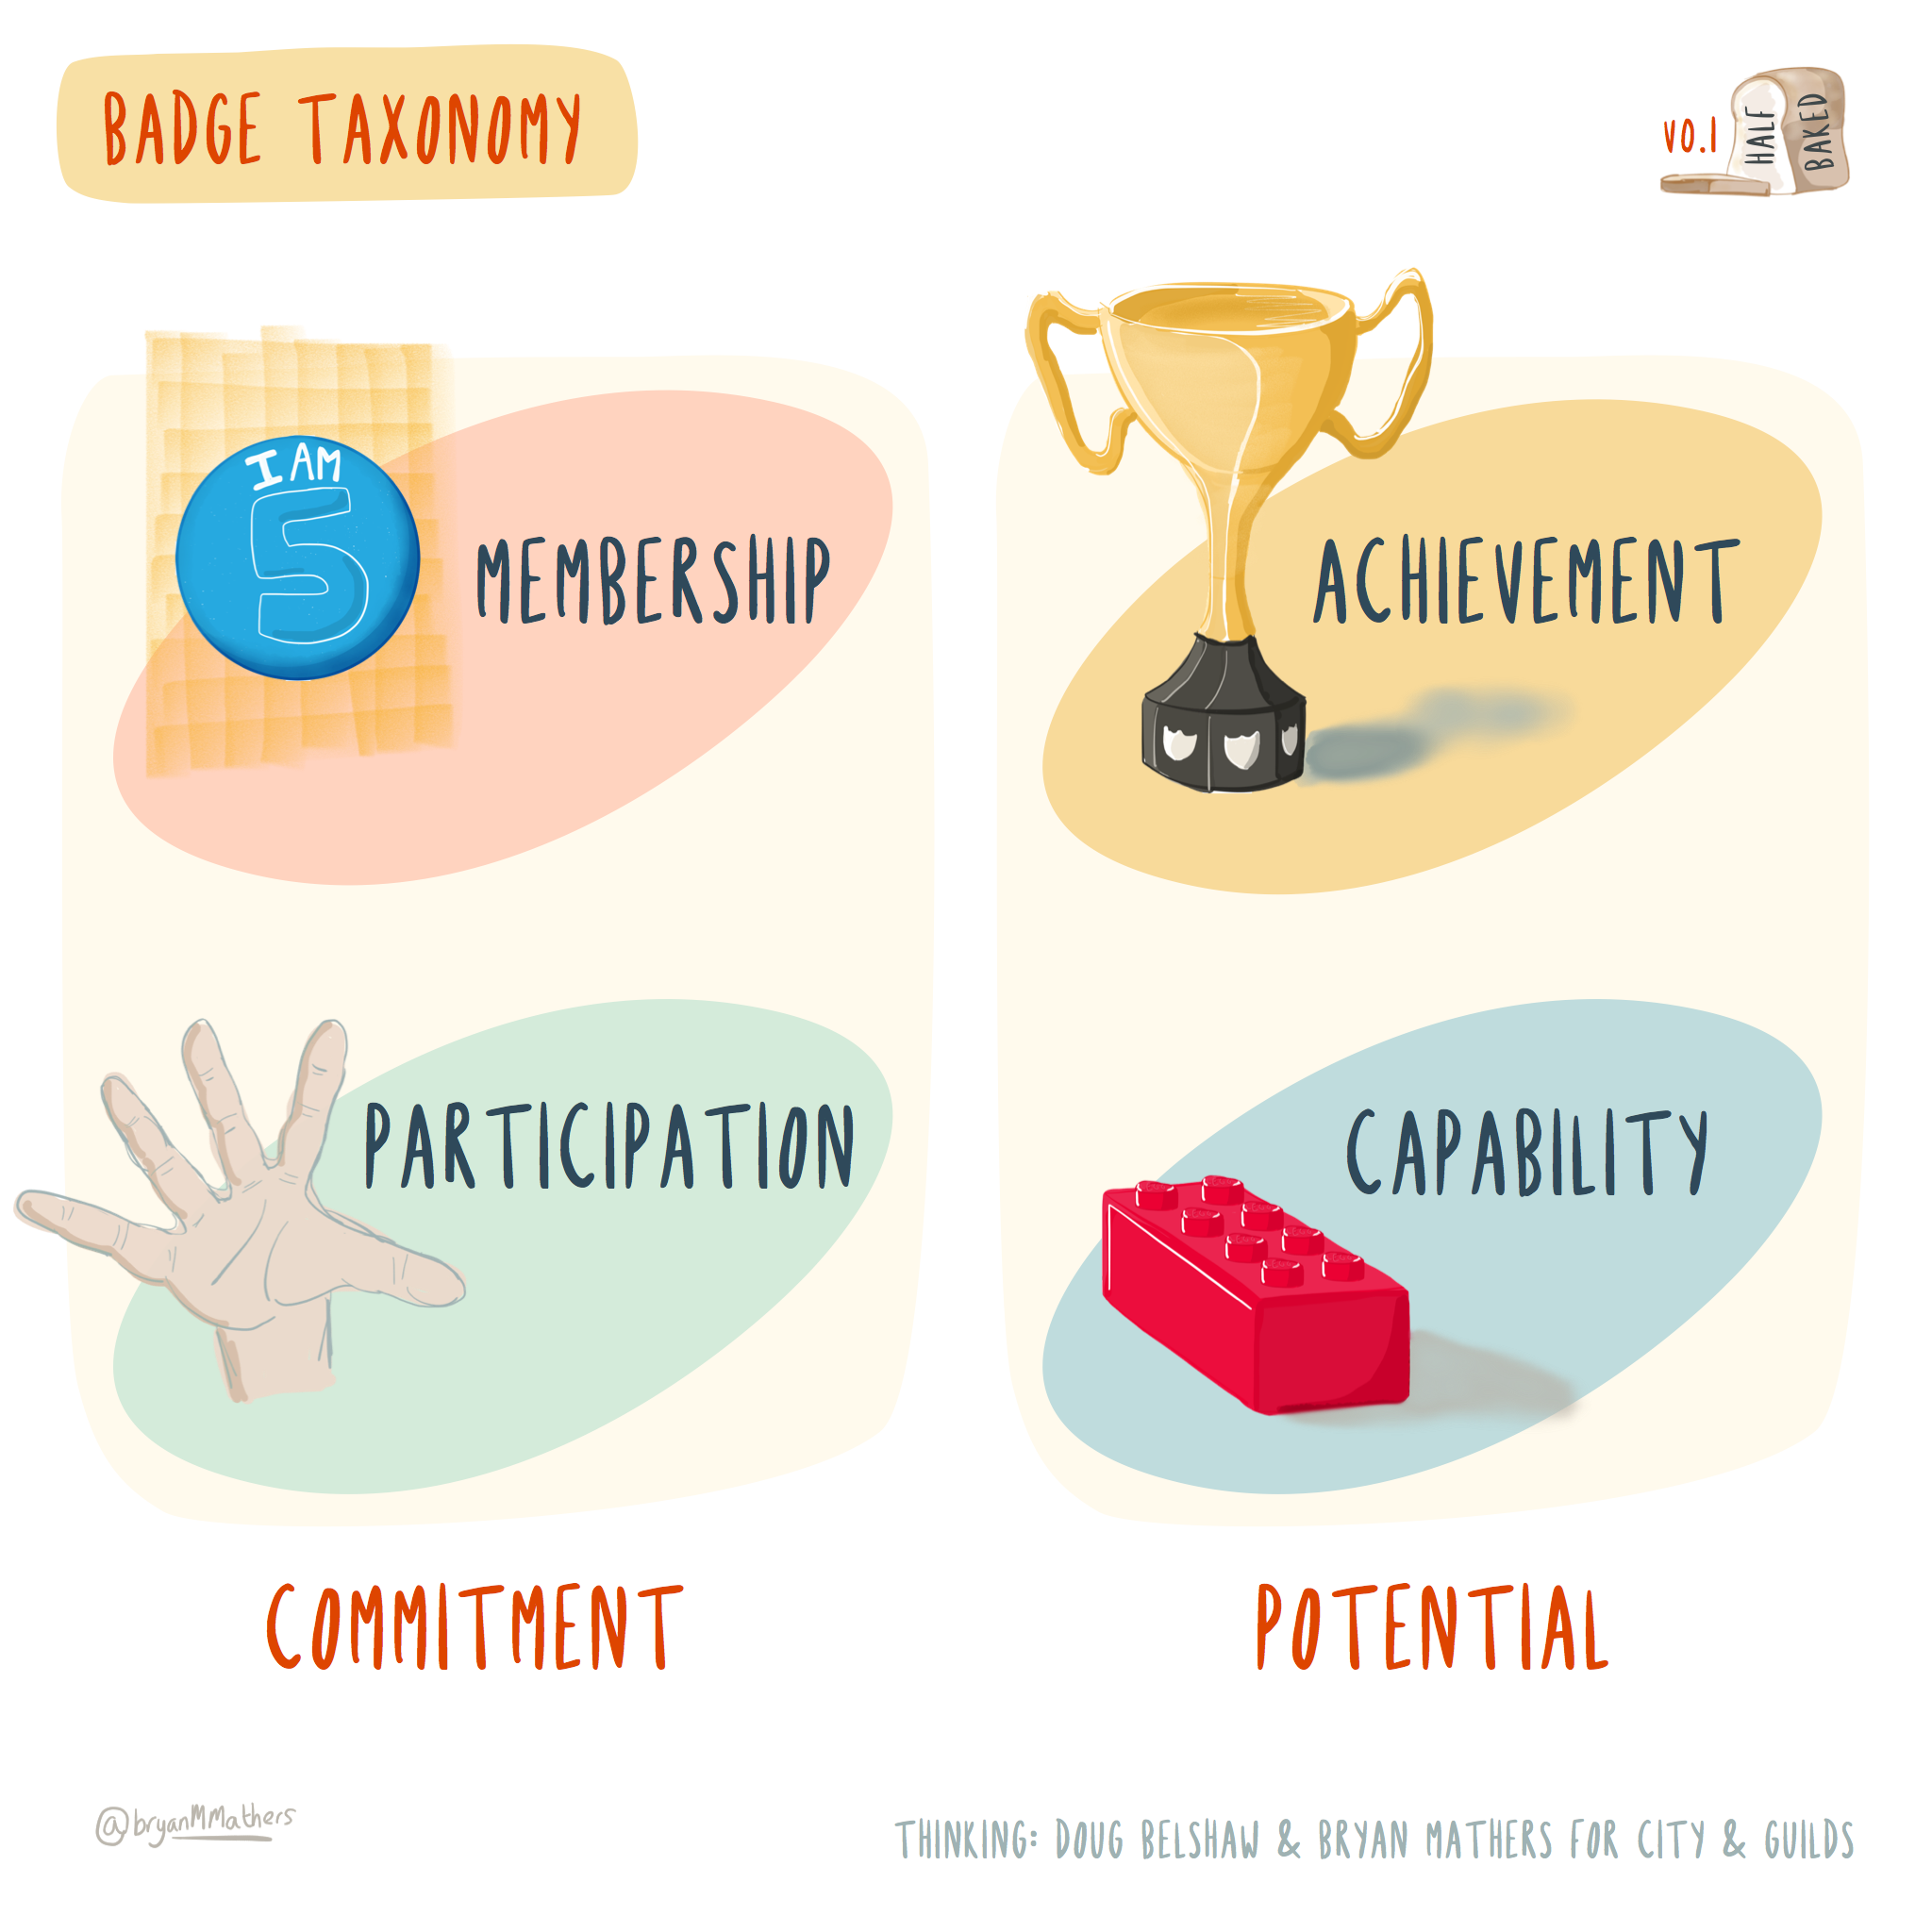 files/images/badge-taxonomy.png